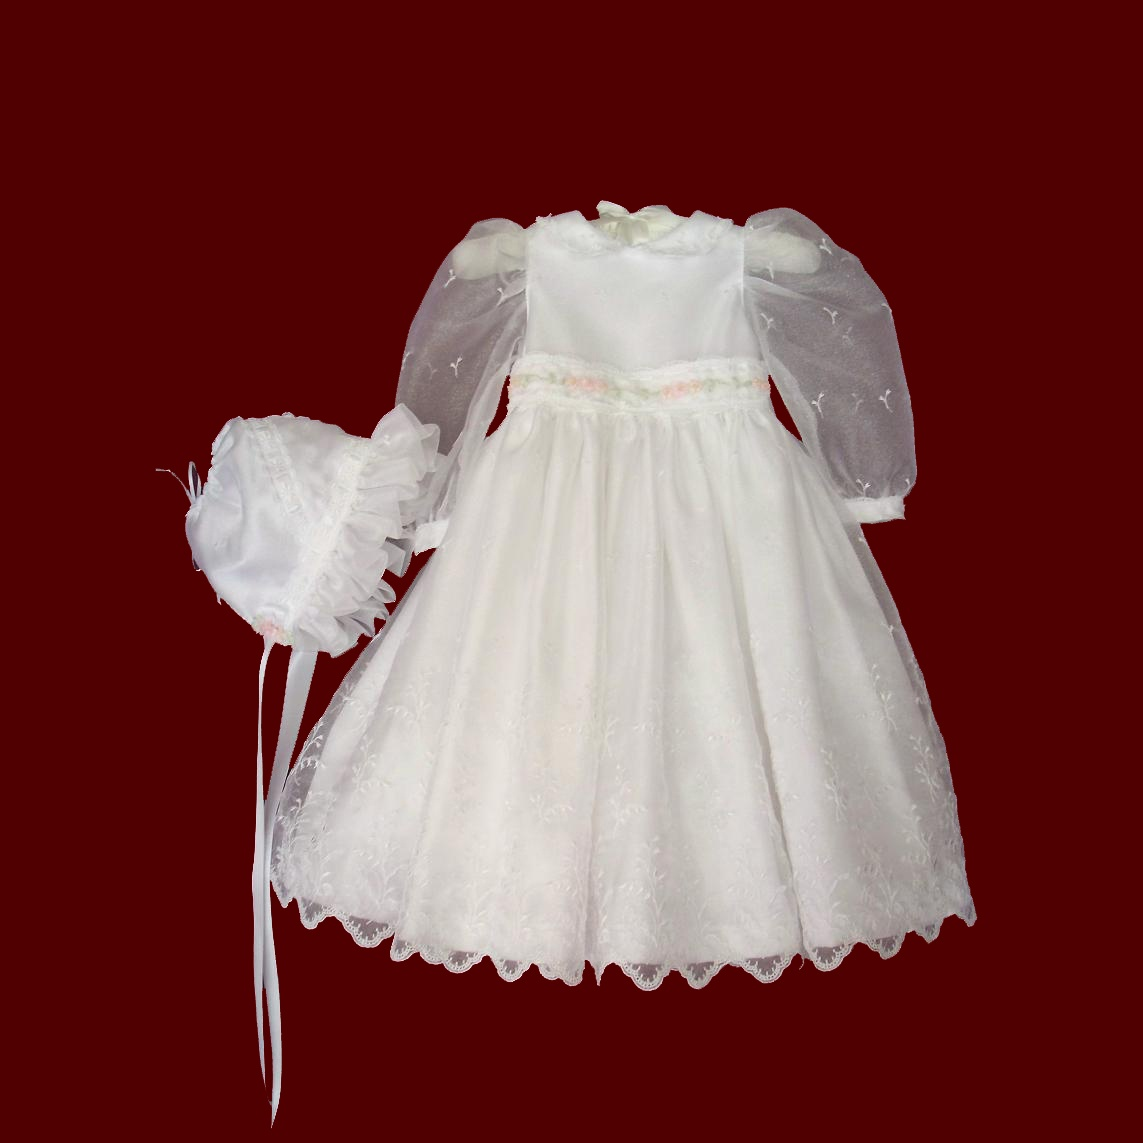 Iridescent Organza Christening Dress For Toddlers/Adoptions